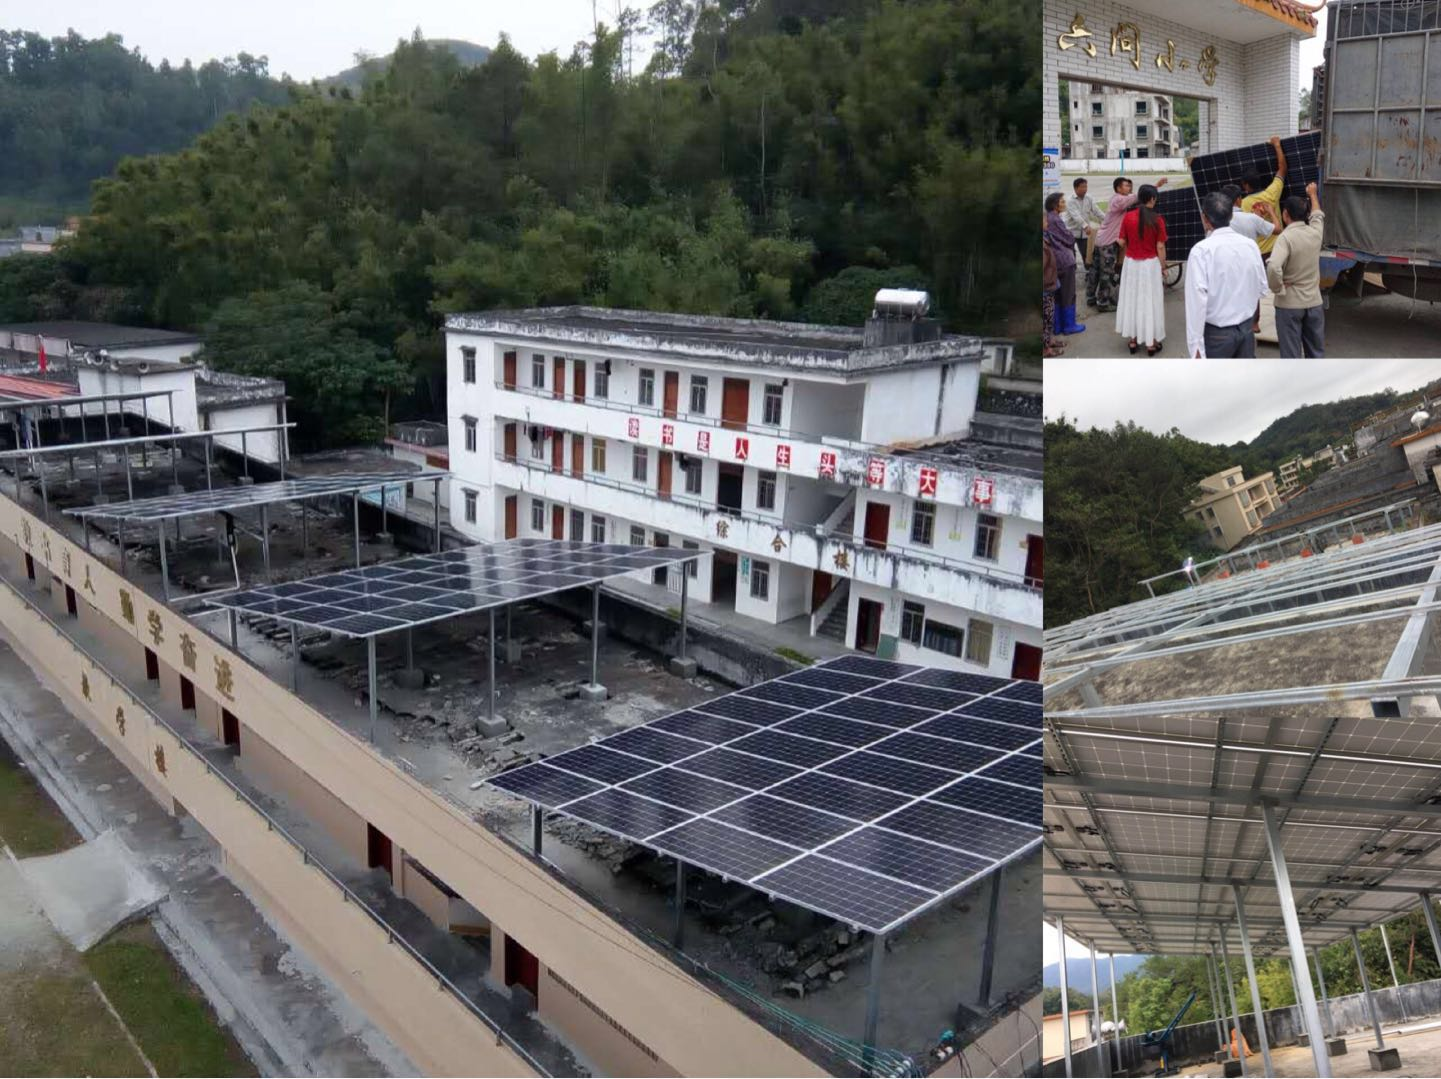 solar roofing system at school building